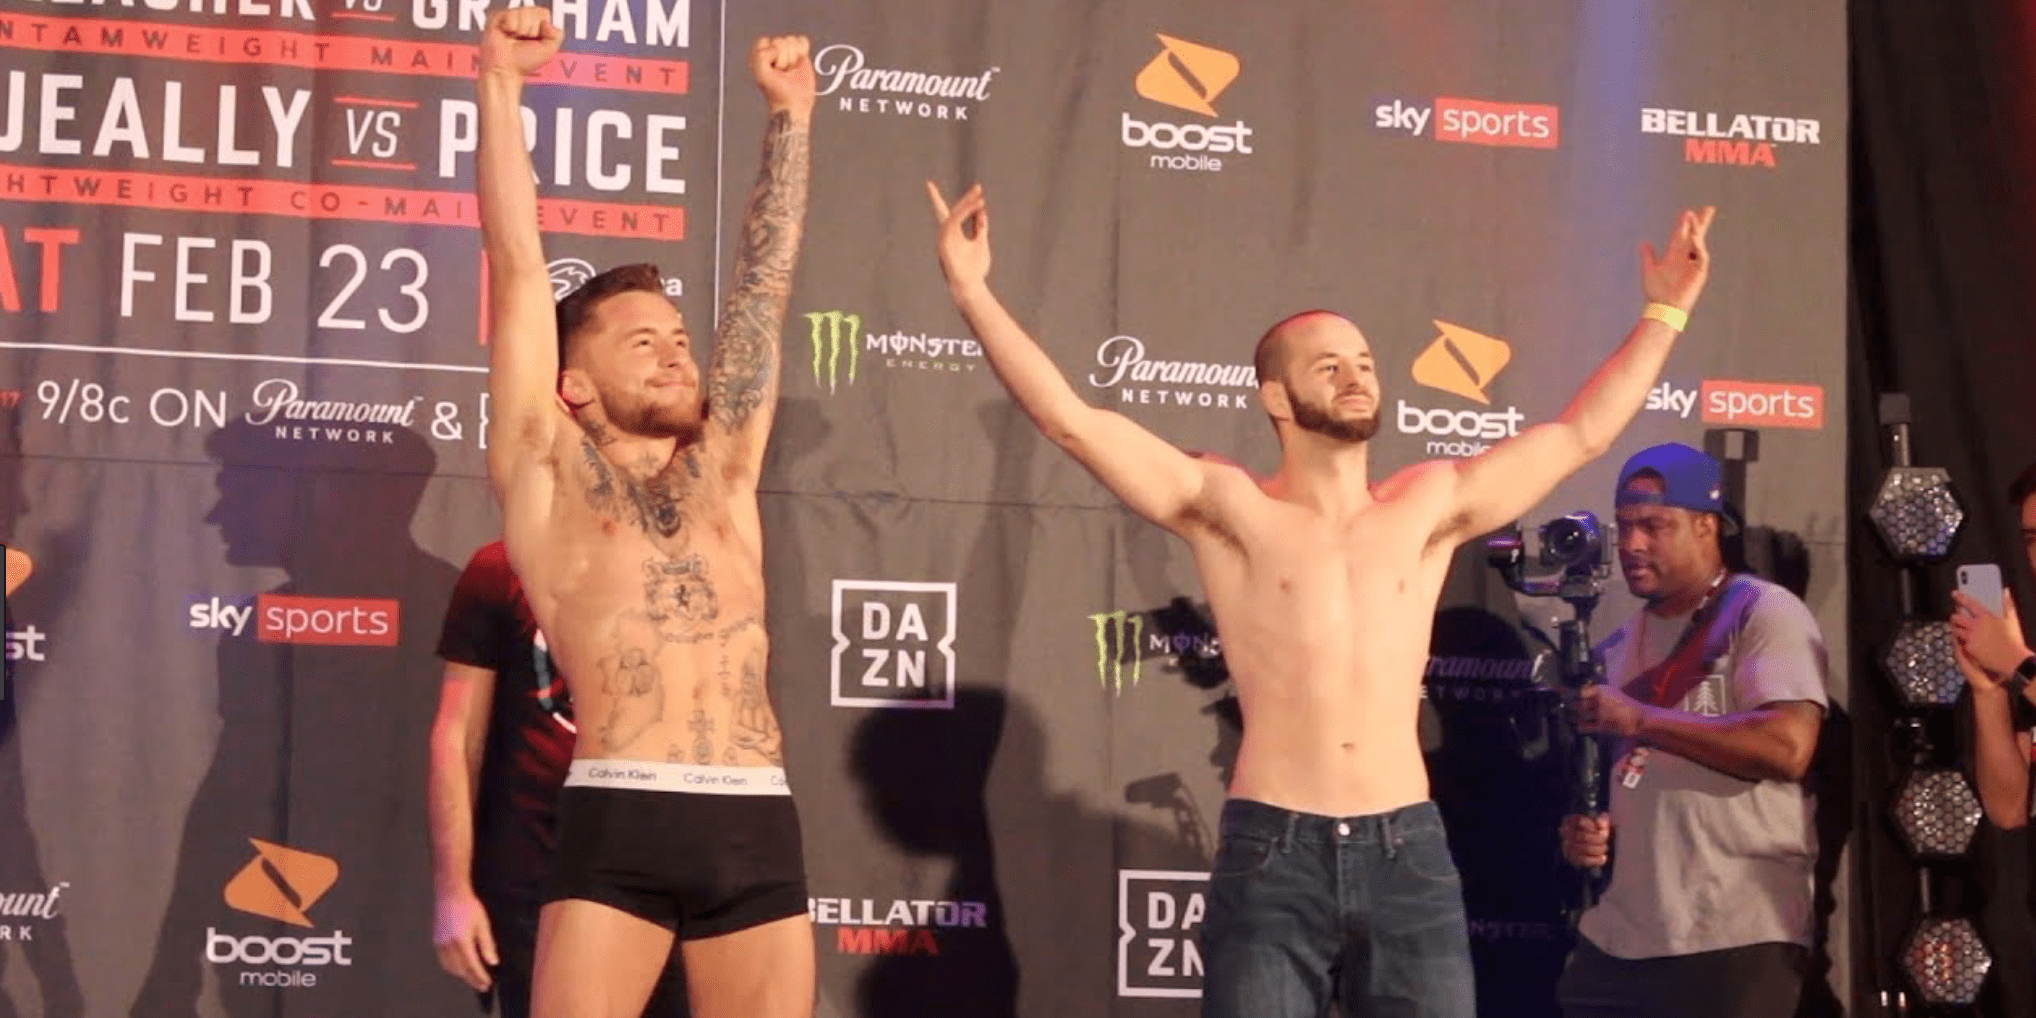 Bellator 217 Weigh-In Results And Video